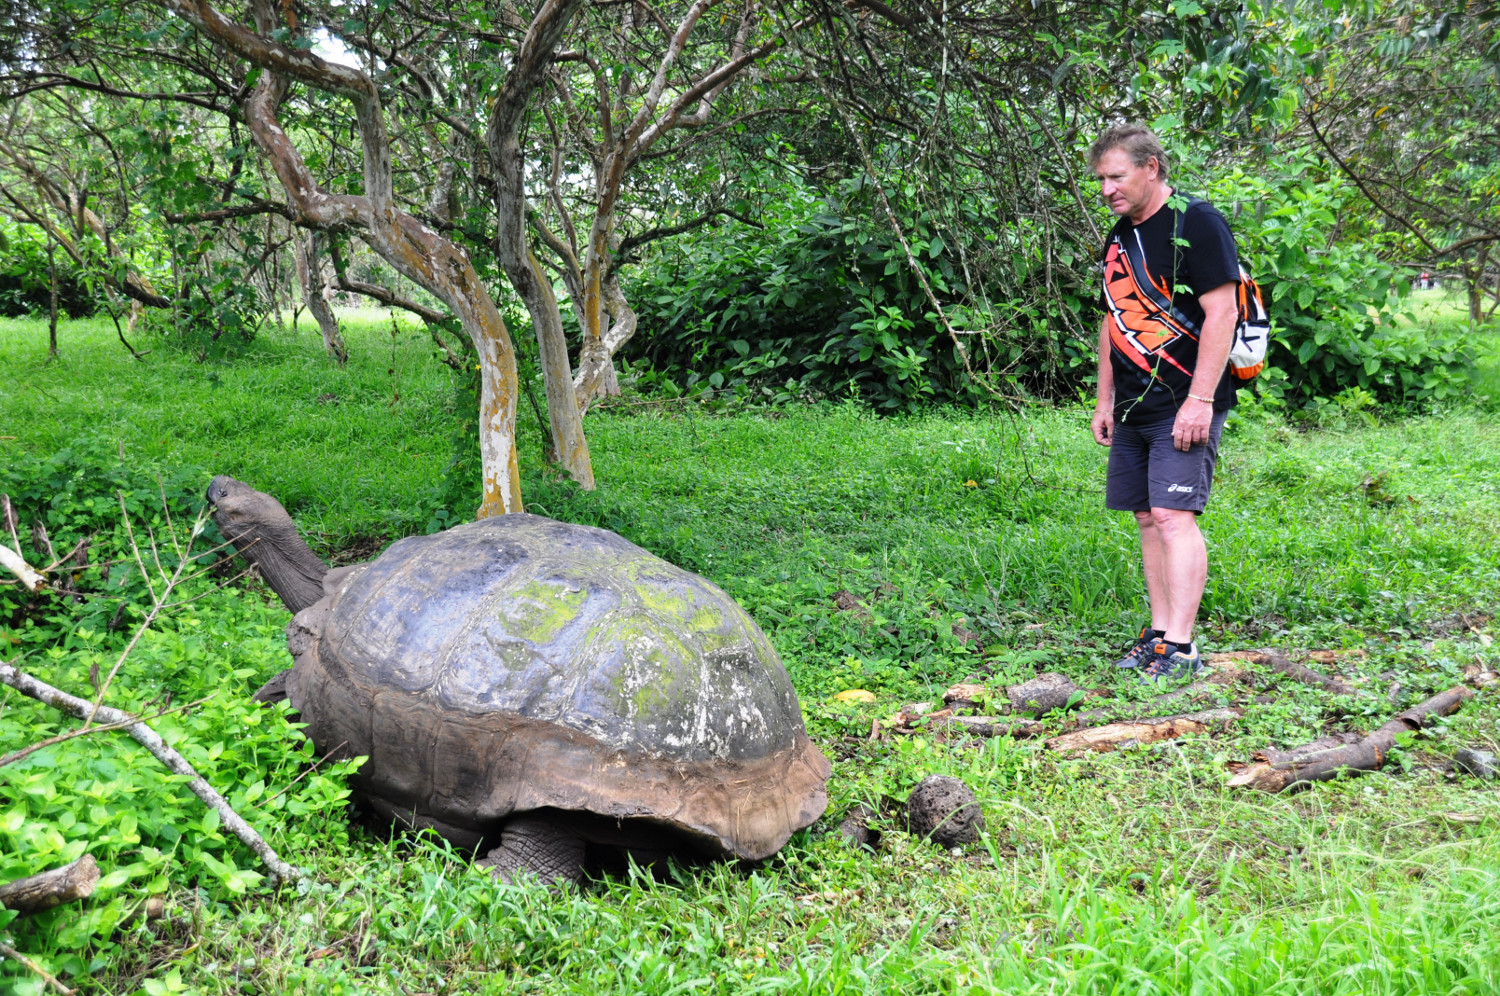 Die Galapagos Riesenschildkröte trägt ihren Namen zurecht | The giant tortoises of Galápagos certainly live up to their name